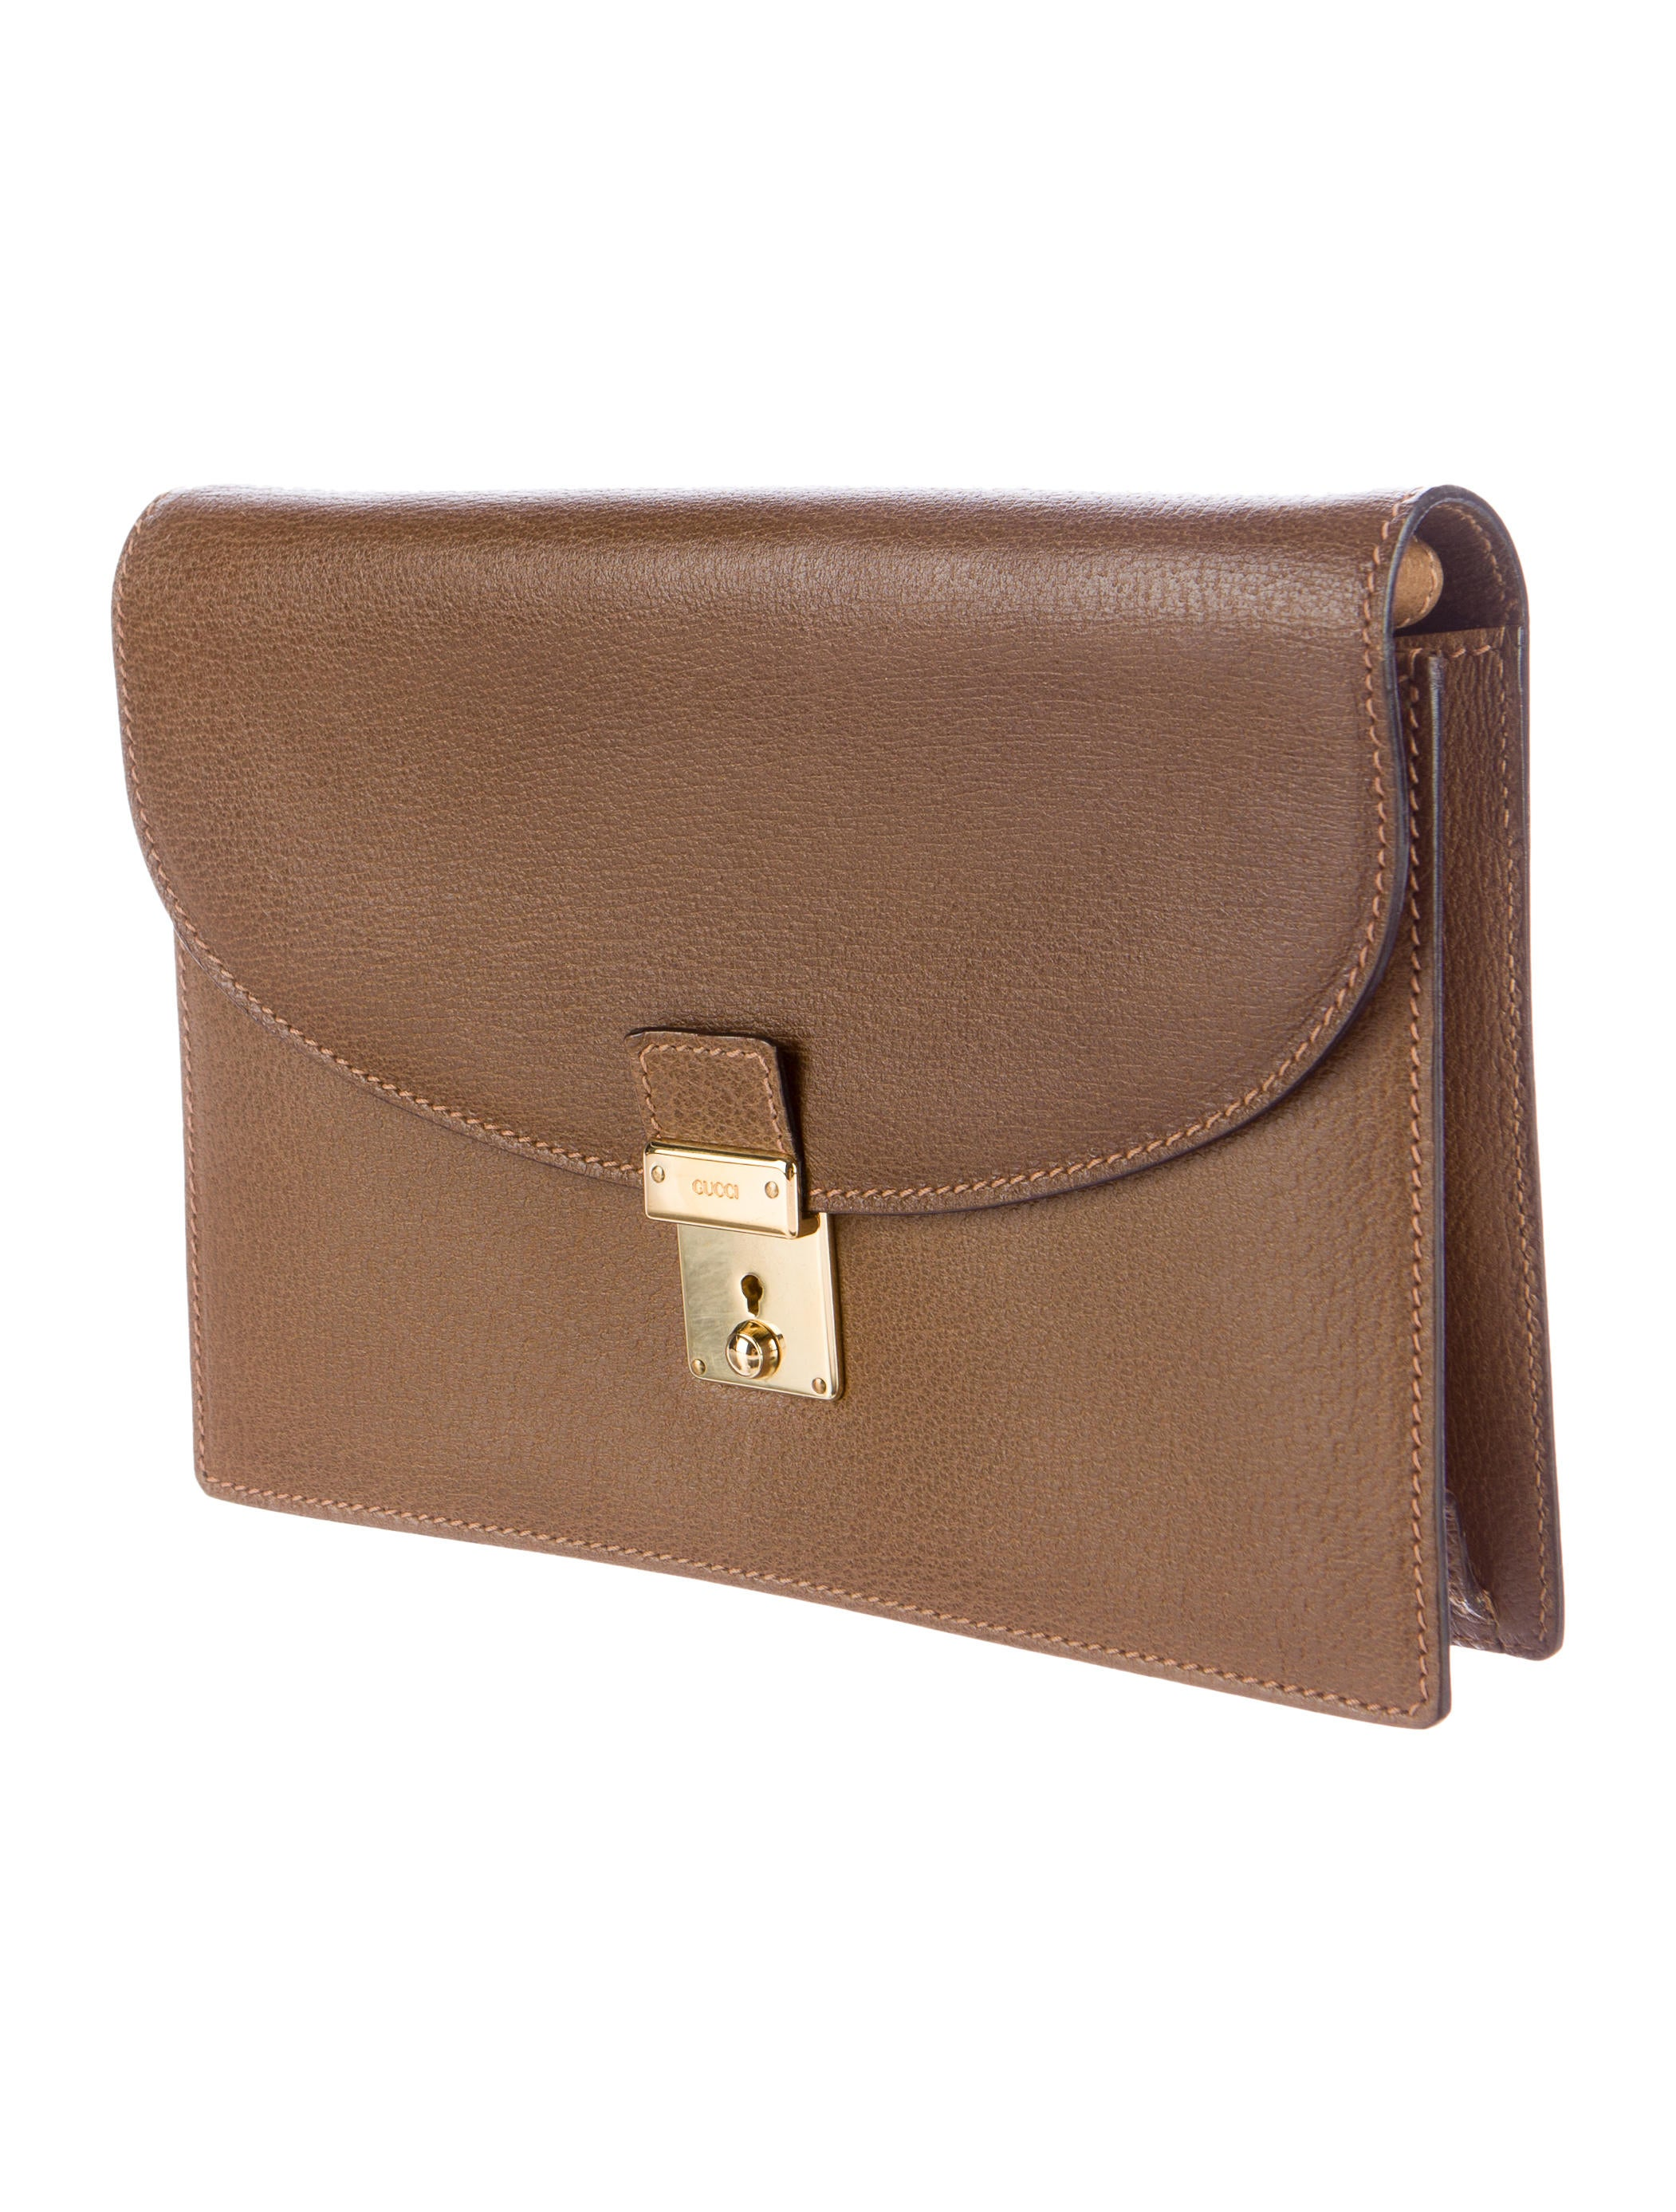 42ab71ae17489f Gucci Wristlets Purses | Stanford Center for Opportunity Policy in ...